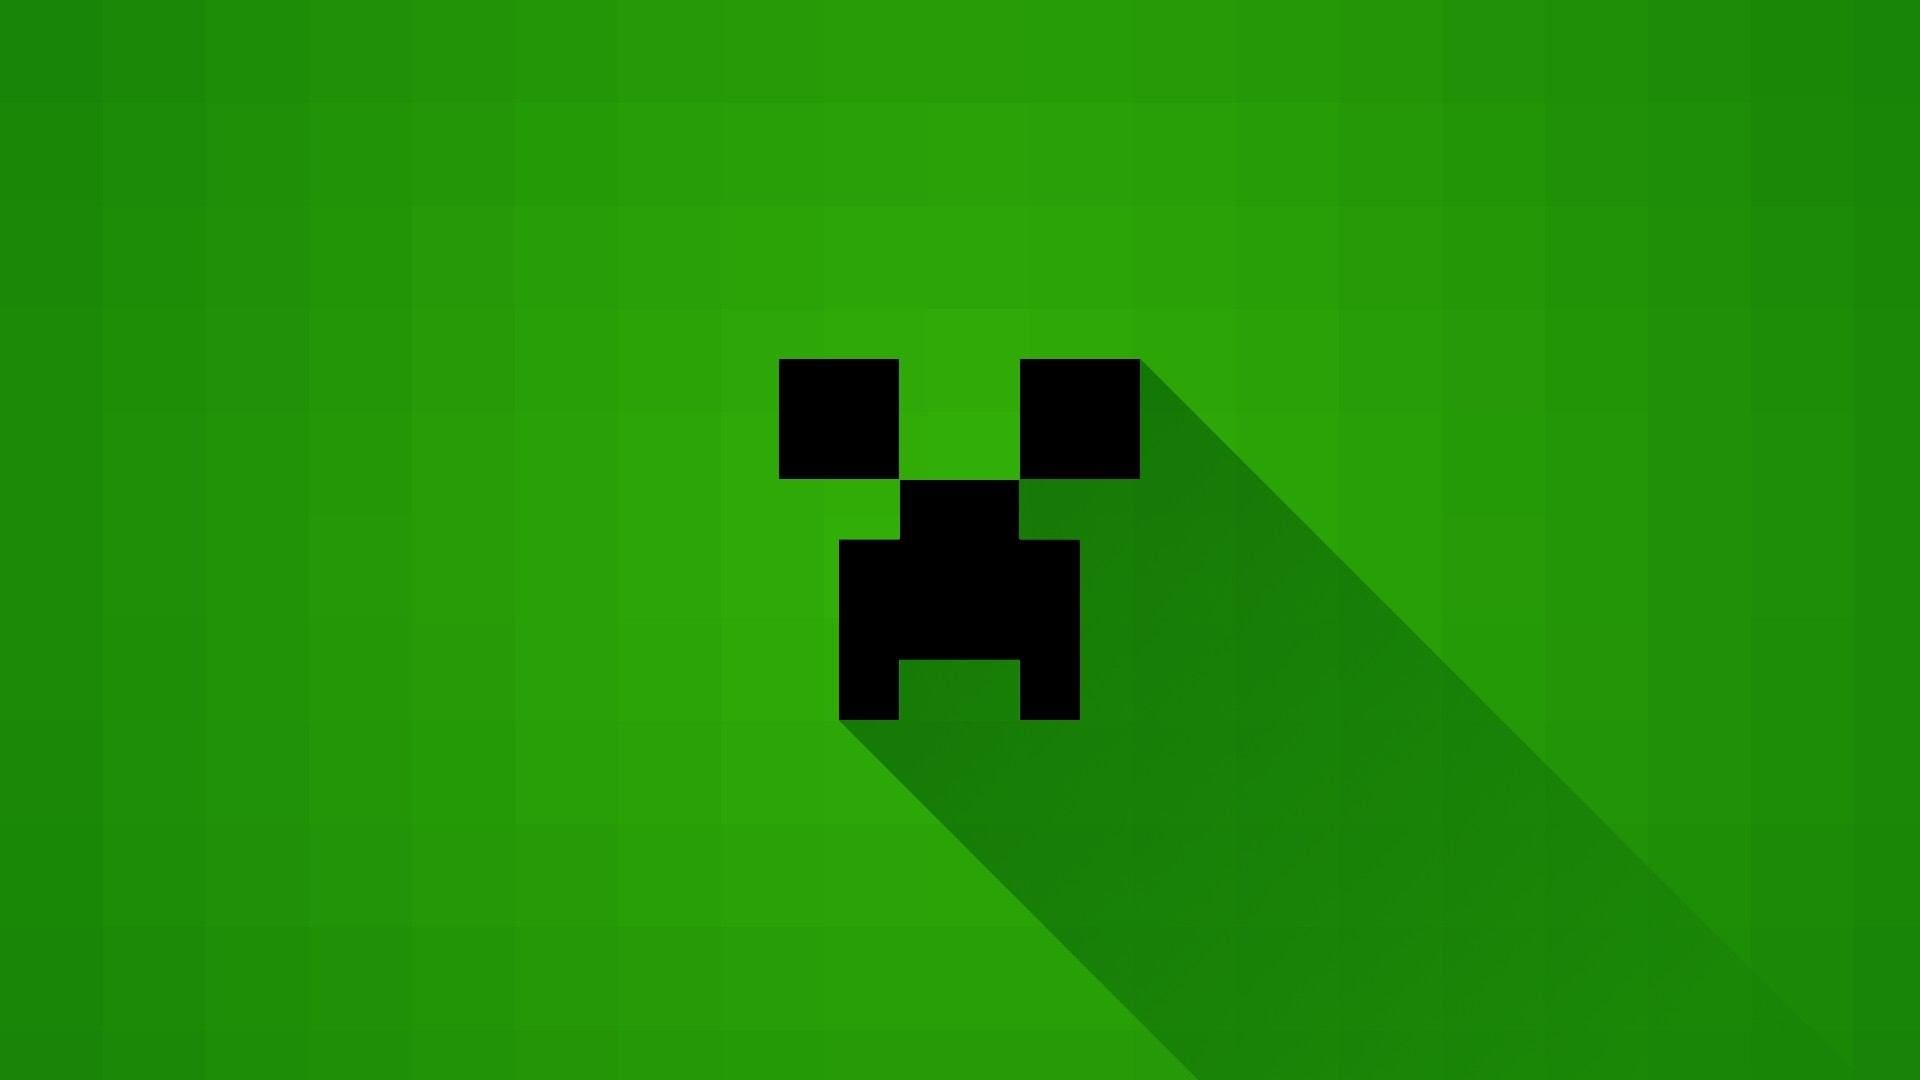 Minecraft Creeper Backgrounds HD Wallpapers Download Free Images Wallpaper [1000image.com]